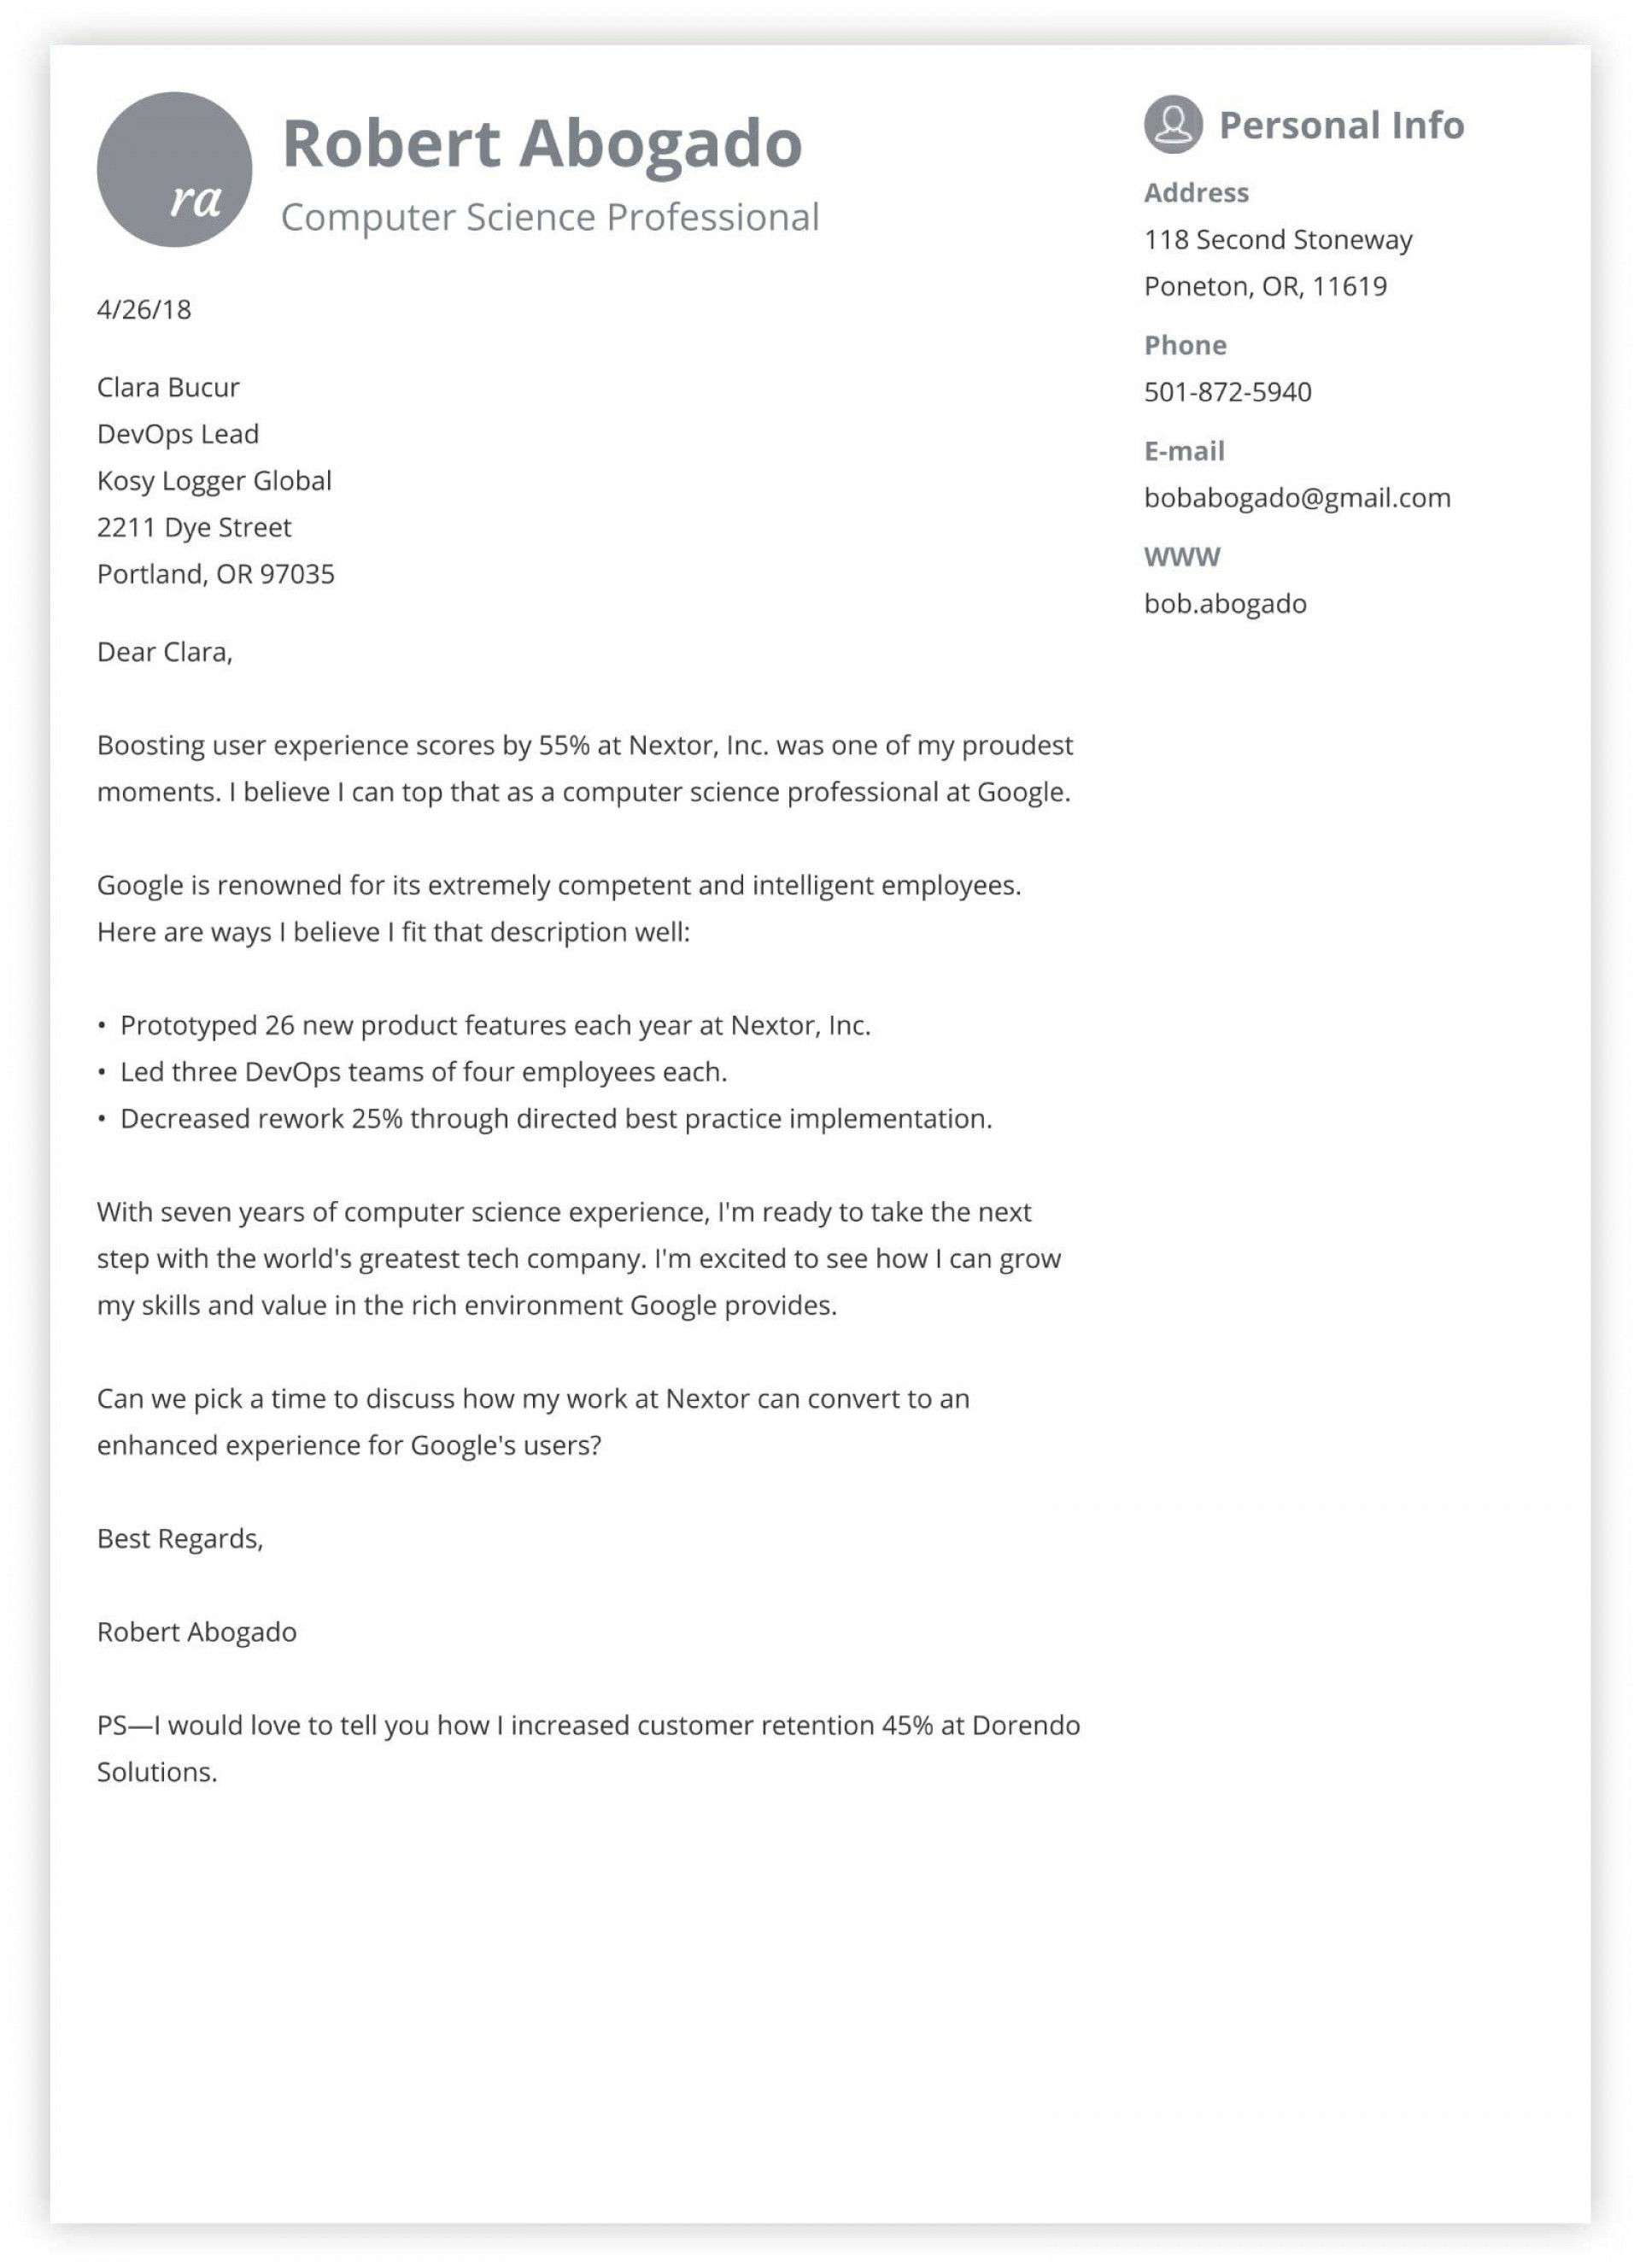 007 Top Excellent Covering Letter Example Highest Quality  Examples1920